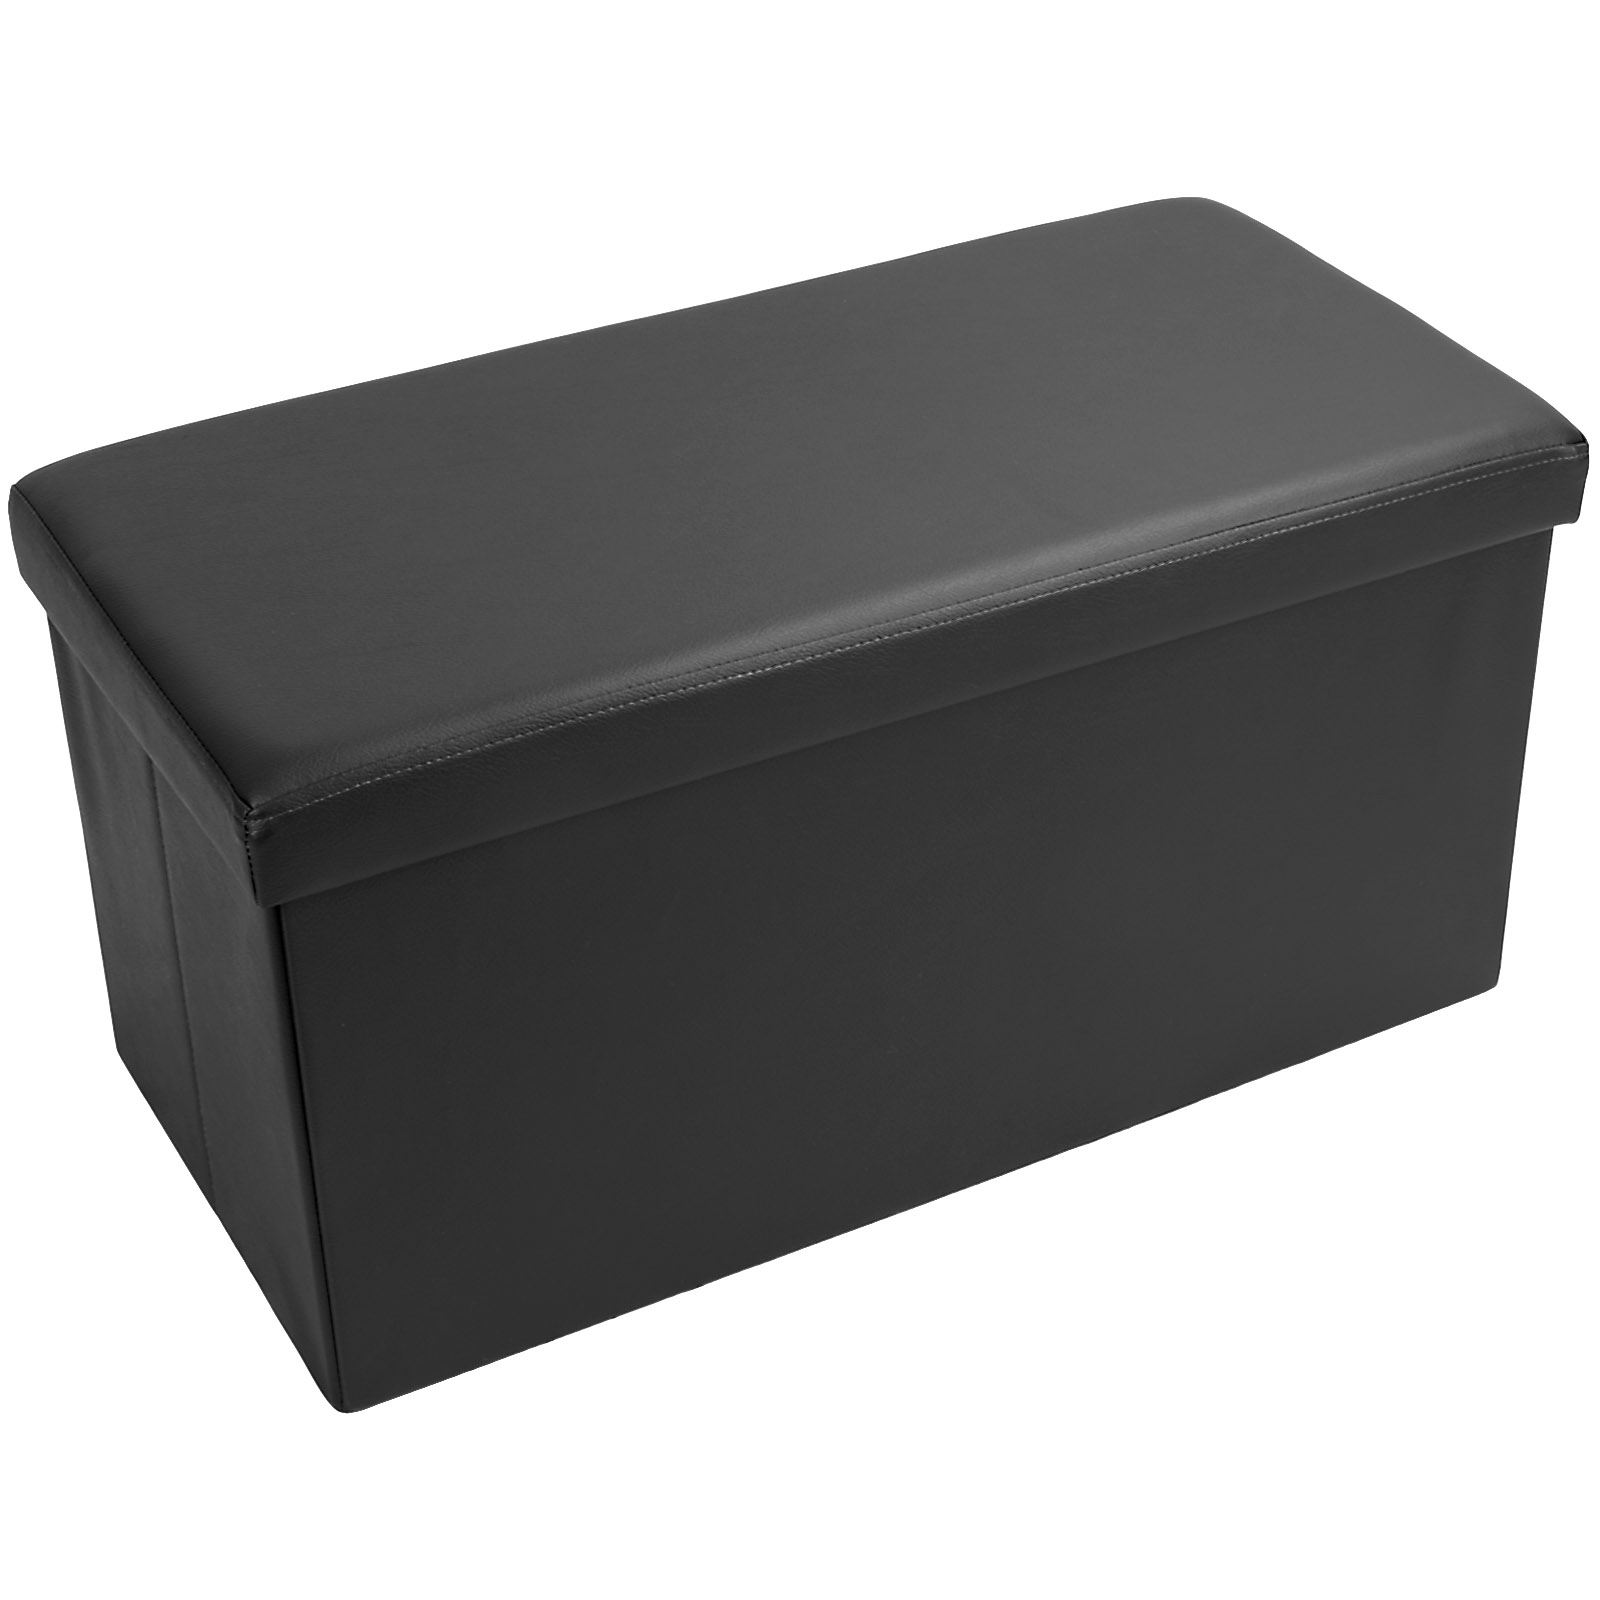 large ottoman folding storage box blanket toy foot rest. Black Bedroom Furniture Sets. Home Design Ideas